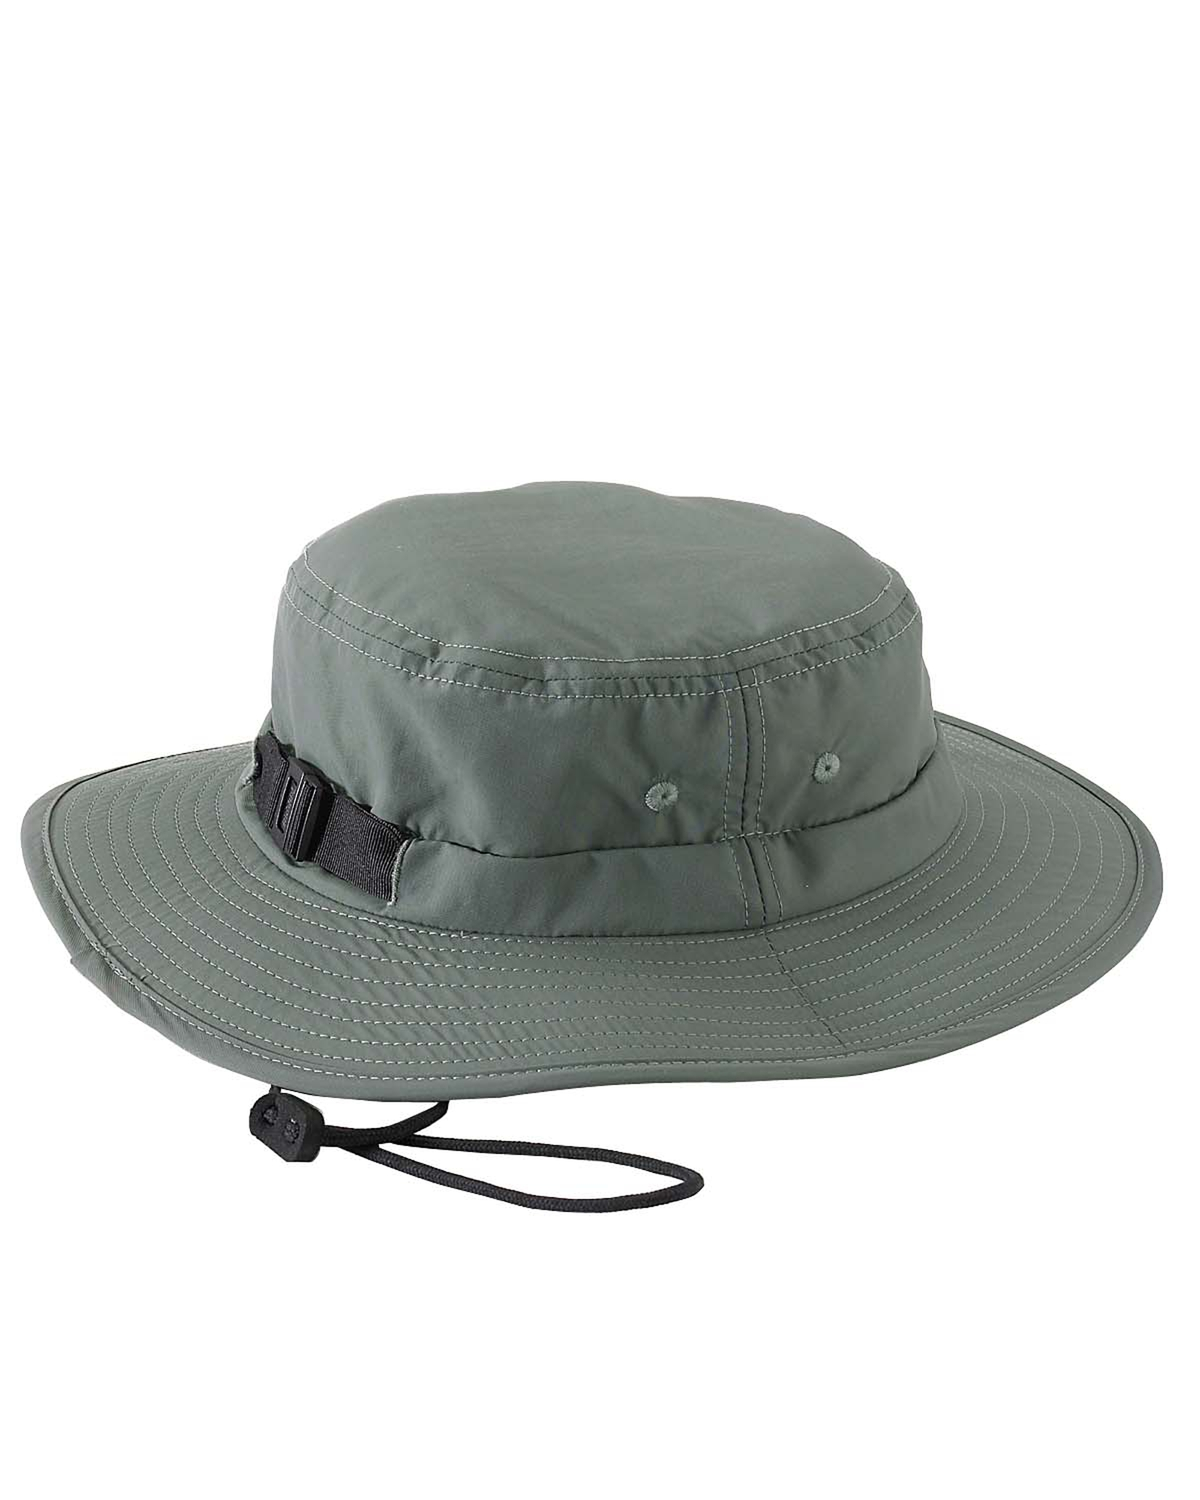 BX016 Big Accessories Guide Hat (available in 6 colors)